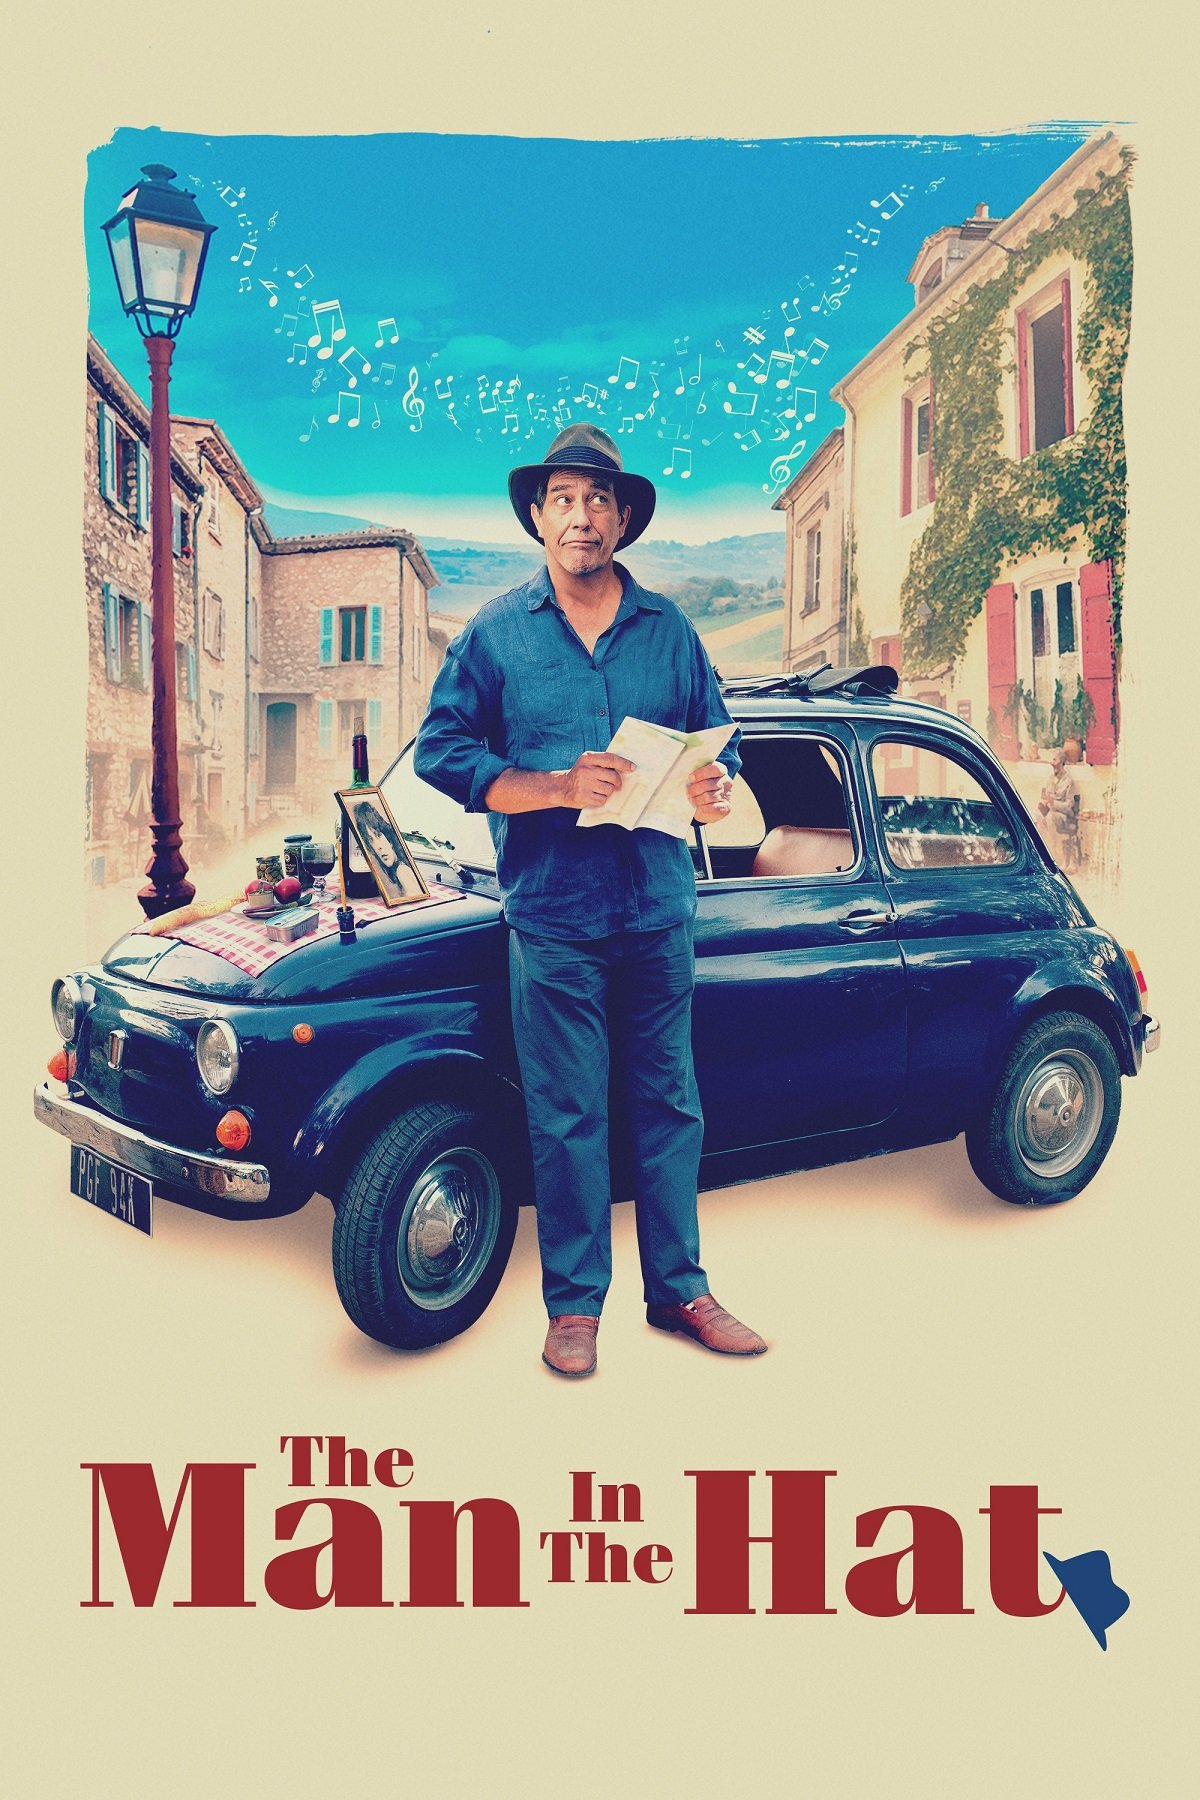 The Man in the Hat poster image